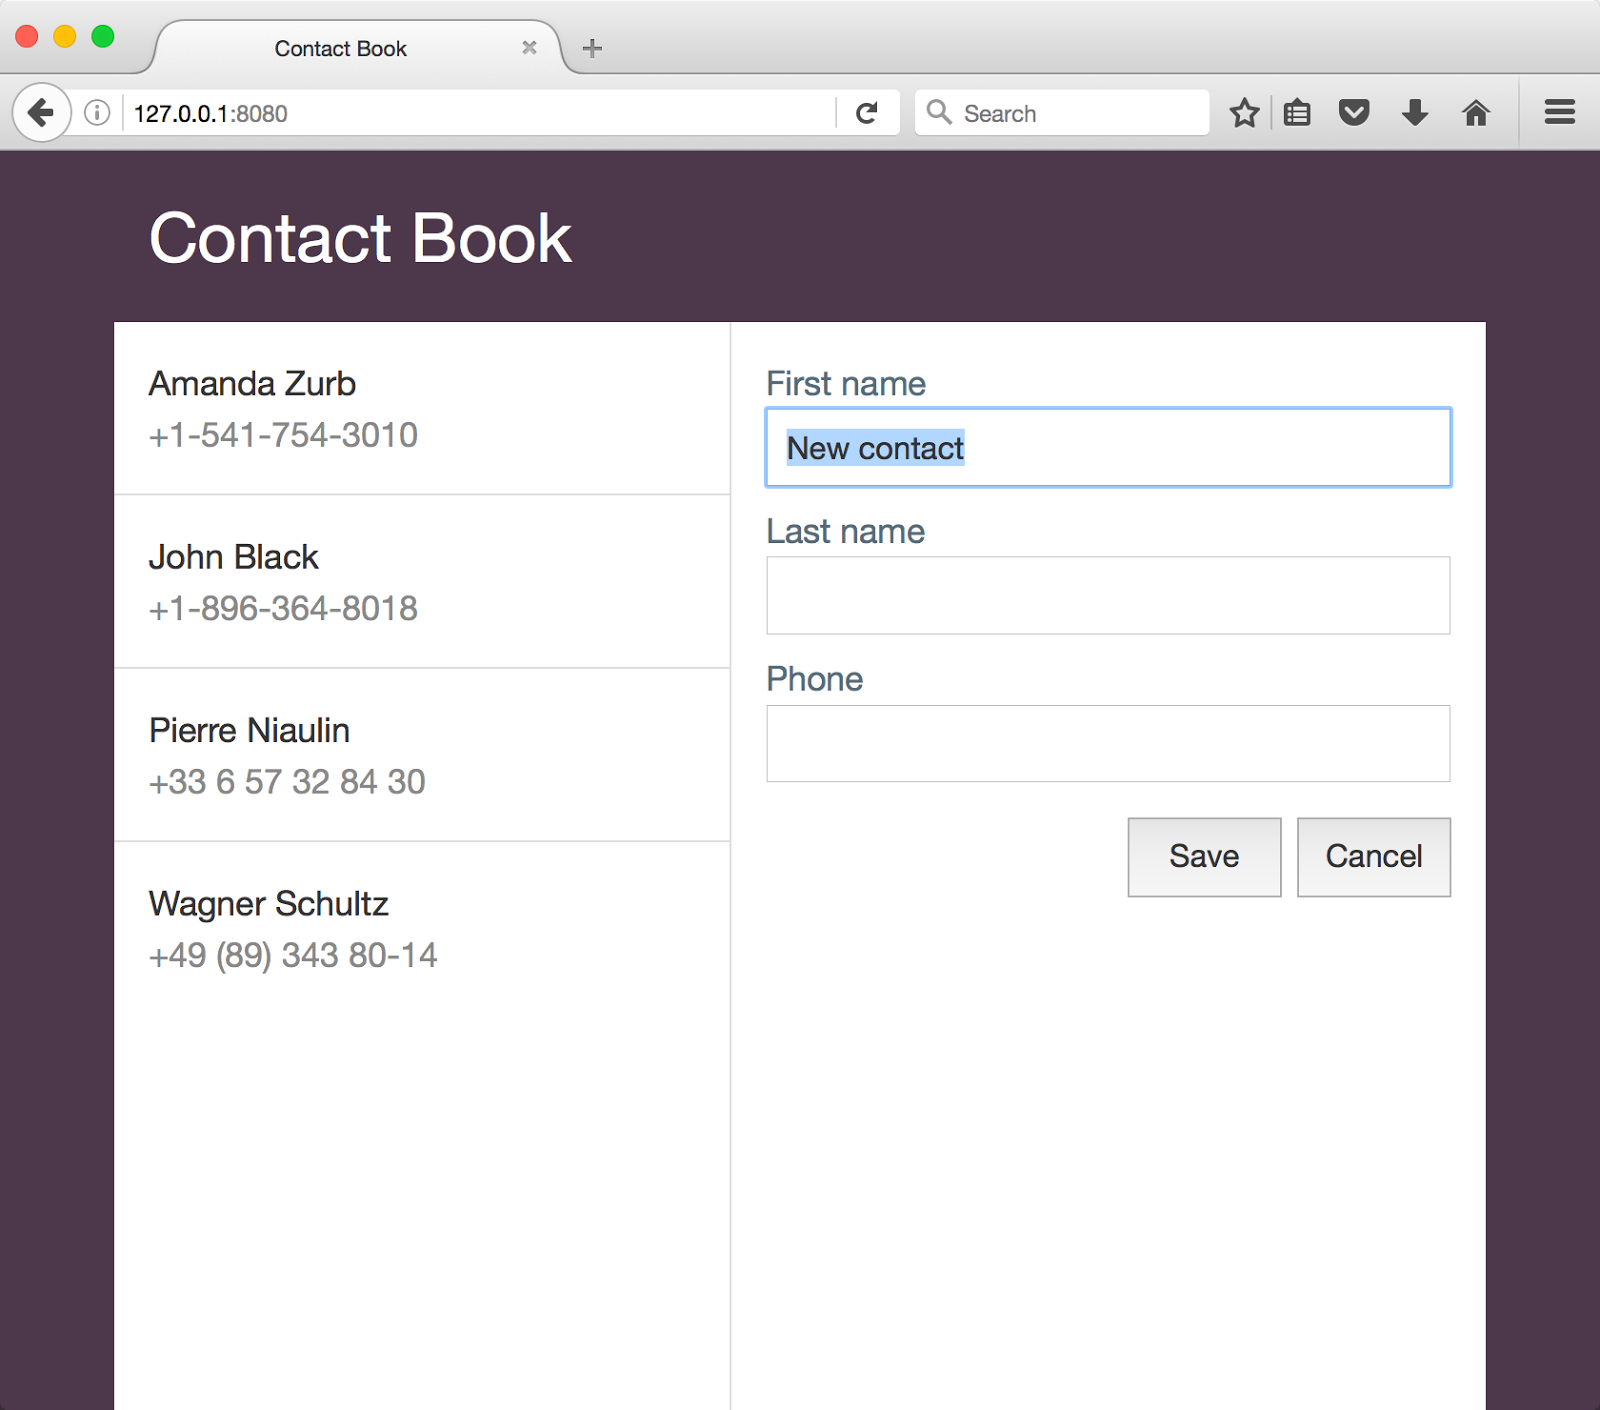 contact book screenshot